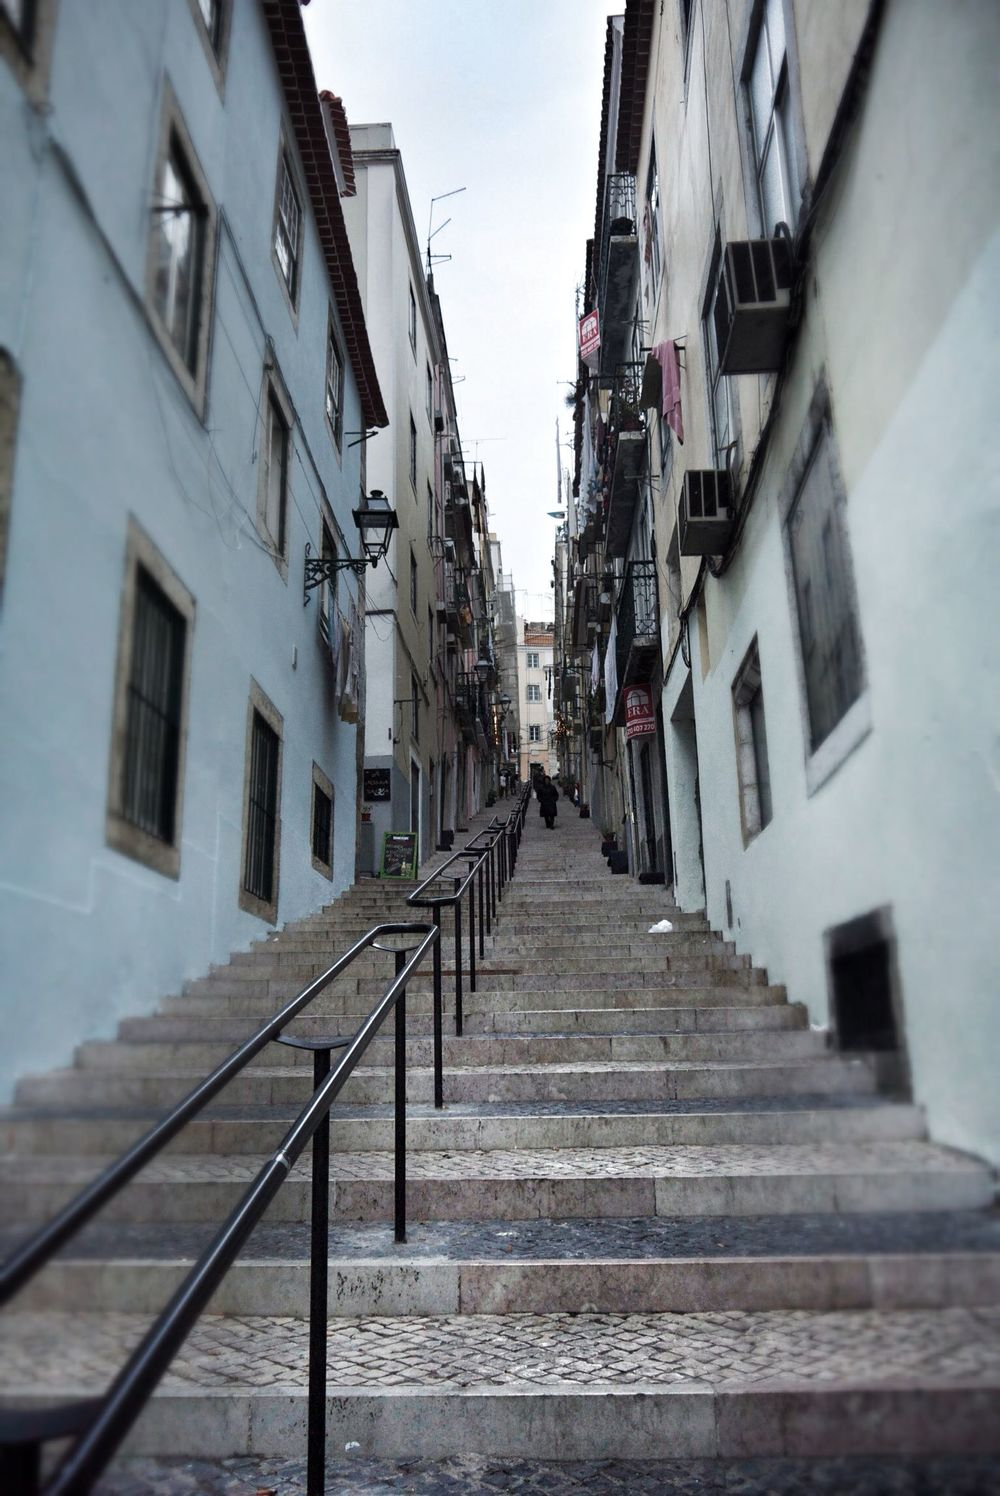 The steep streets of Bica